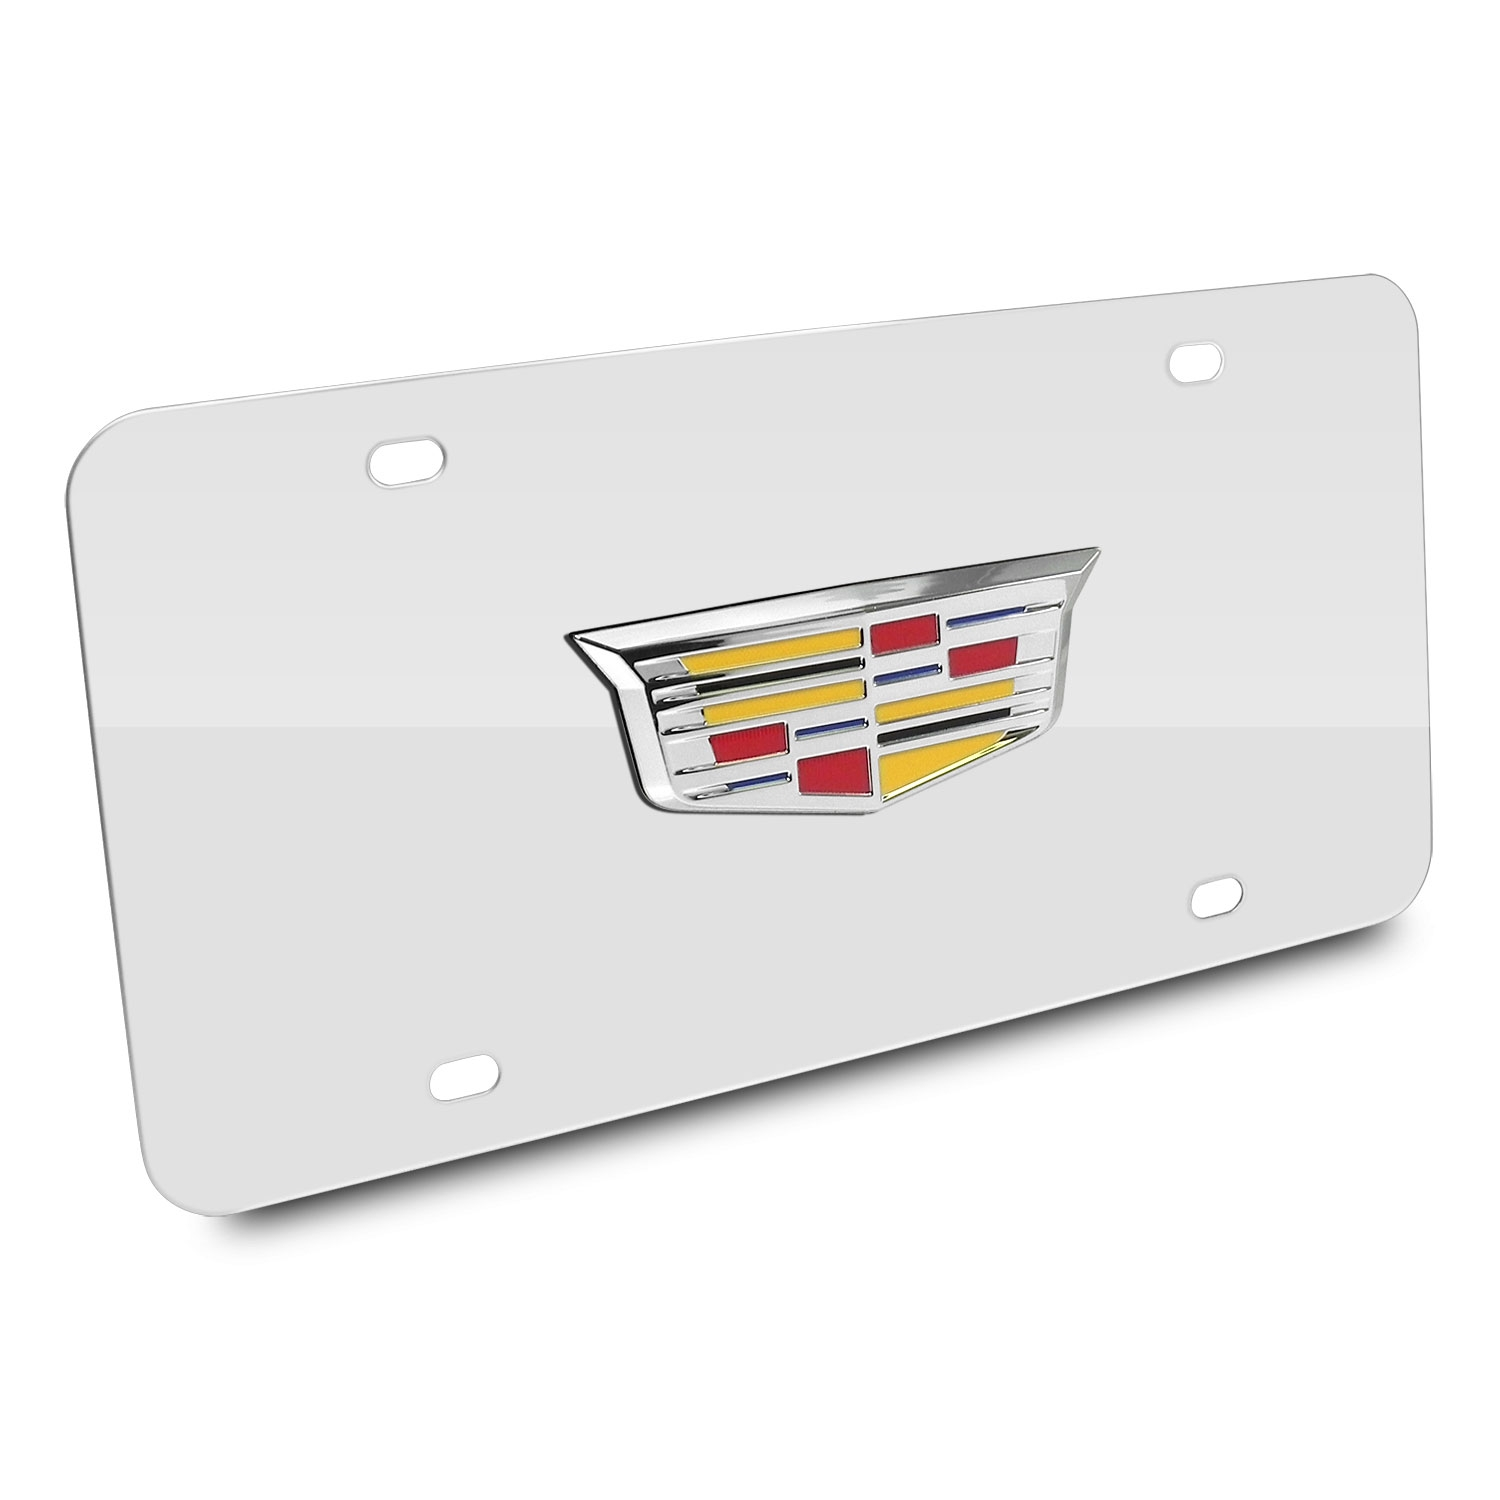 Cadillac Crest 3d Logo Chrome Stainless Steel License Plate